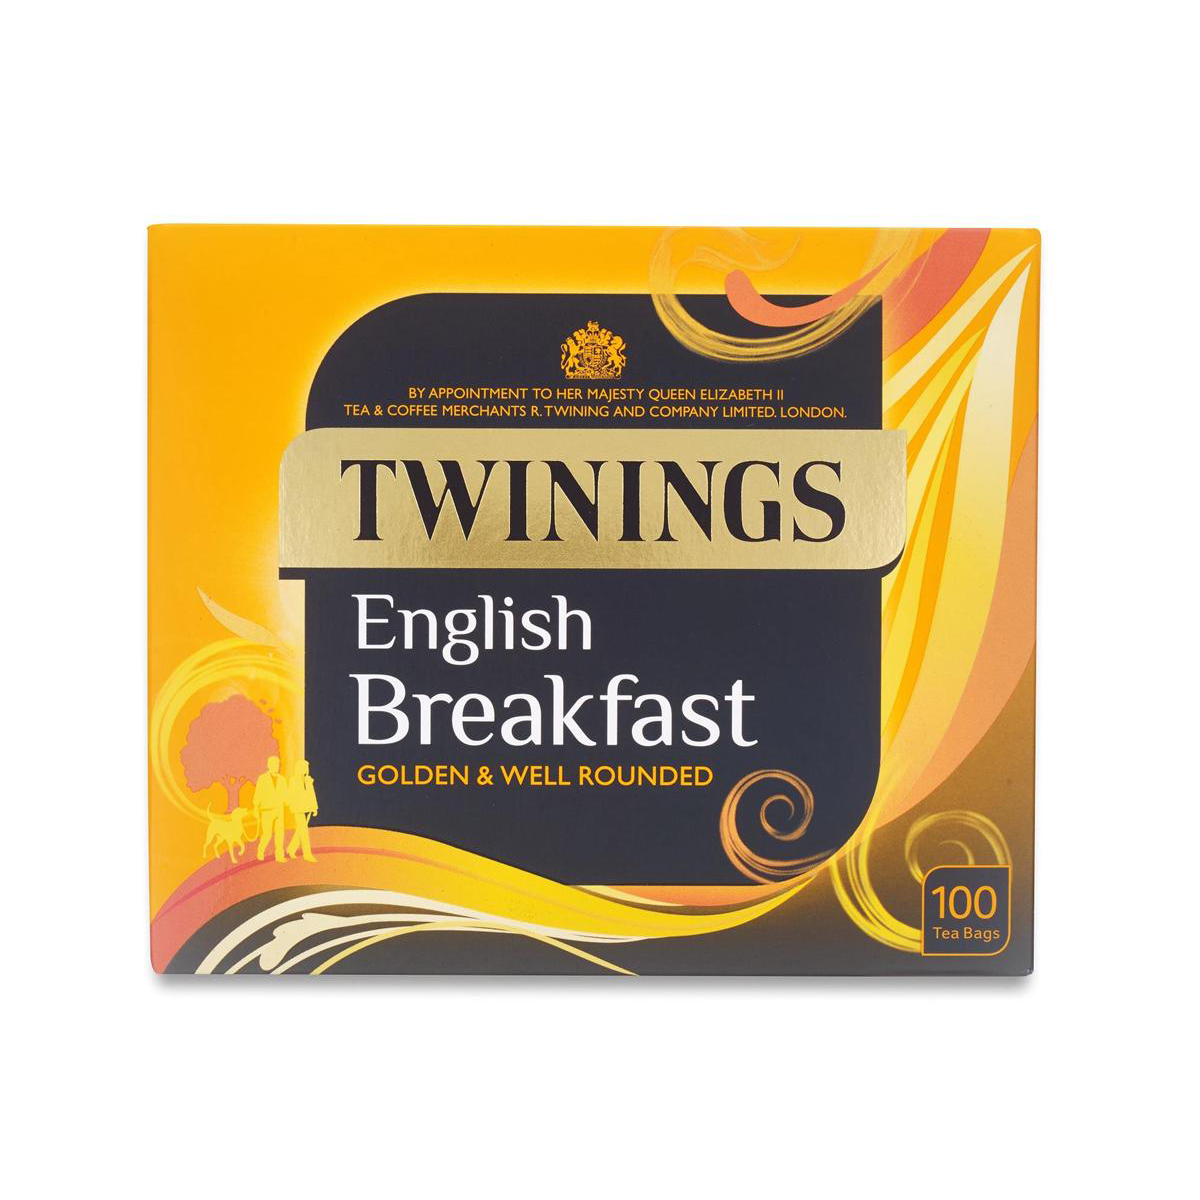 Twinings Tea Bags English Breakfast Fine High Quality Aromatic Ref 0403135 Pack 100